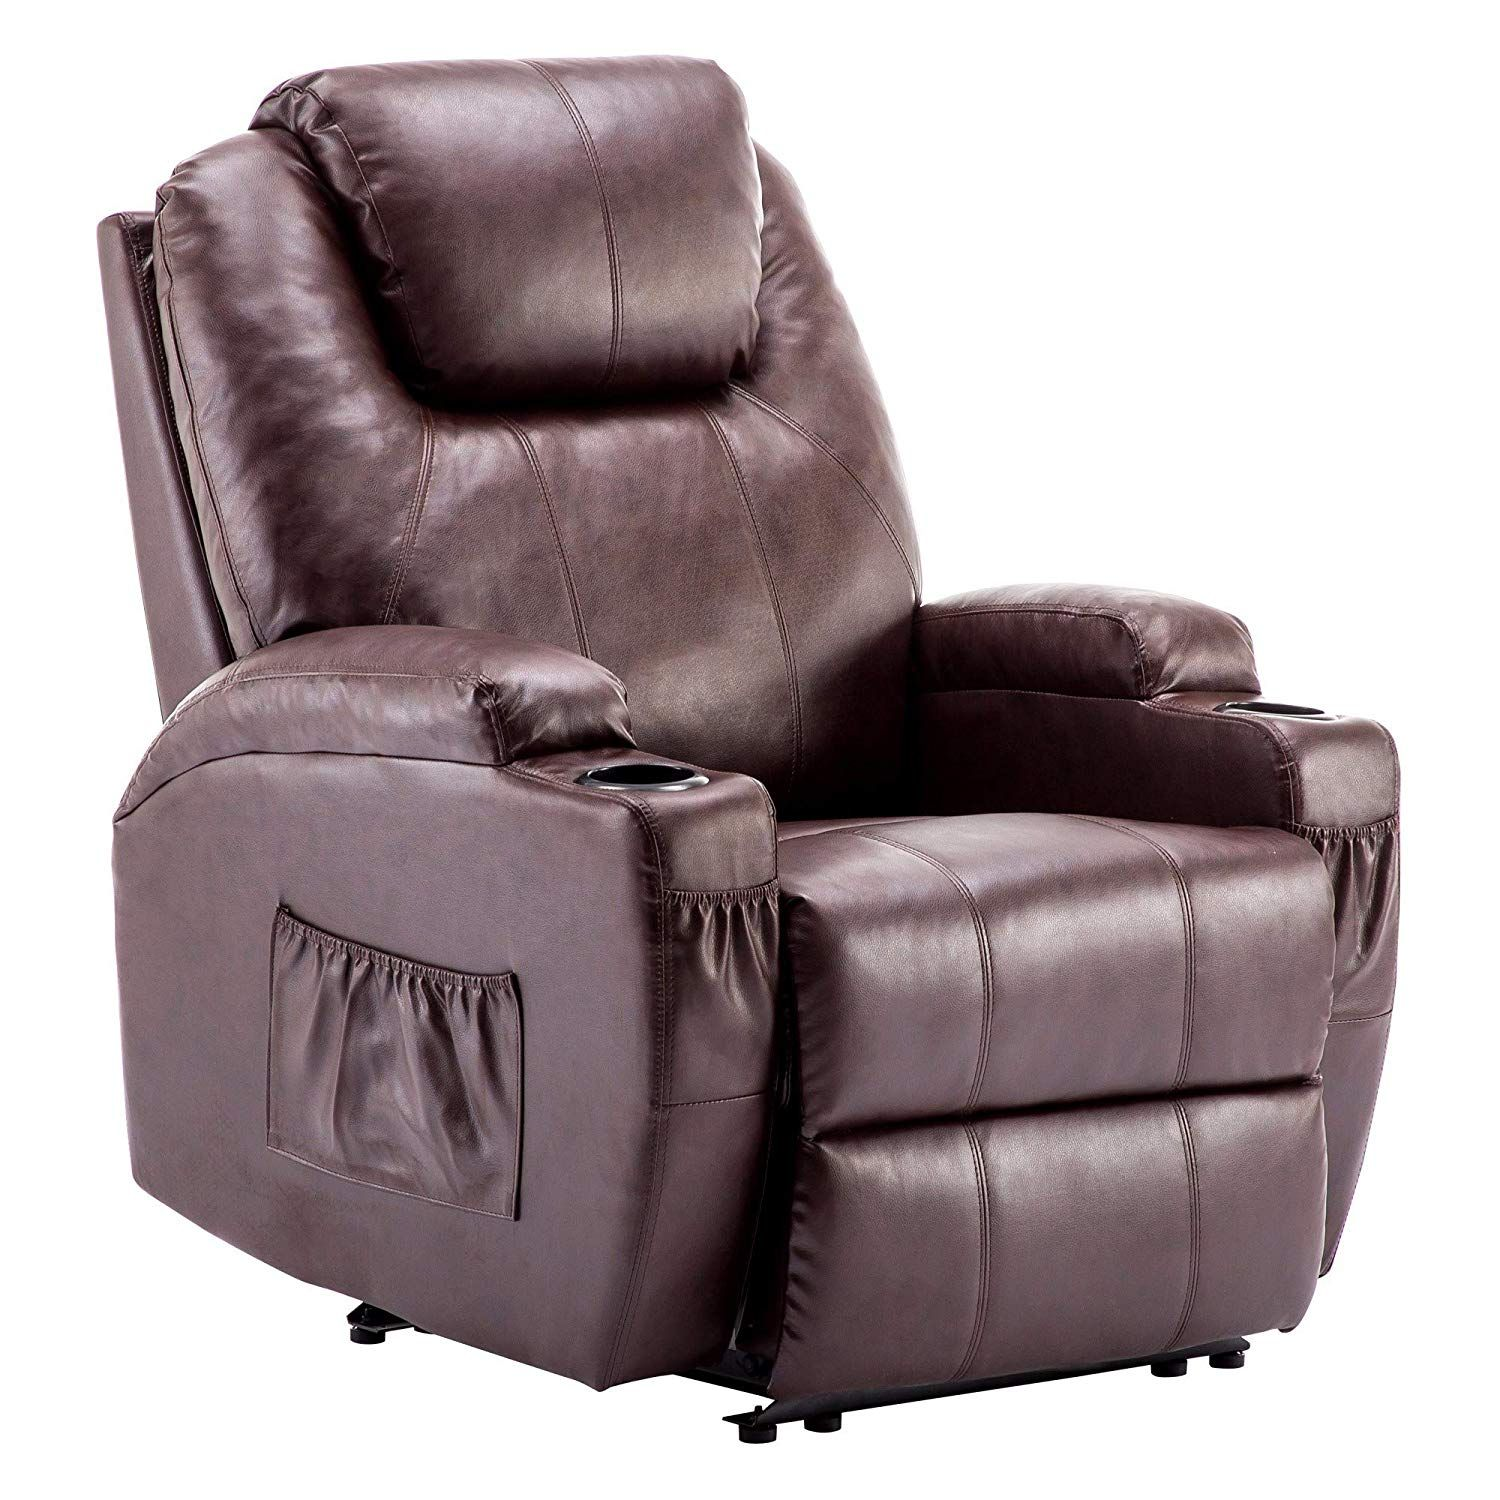 Strange Best Recliners The Top 10 Reclining Chairs Of 2019 Spiritservingveterans Wood Chair Design Ideas Spiritservingveteransorg